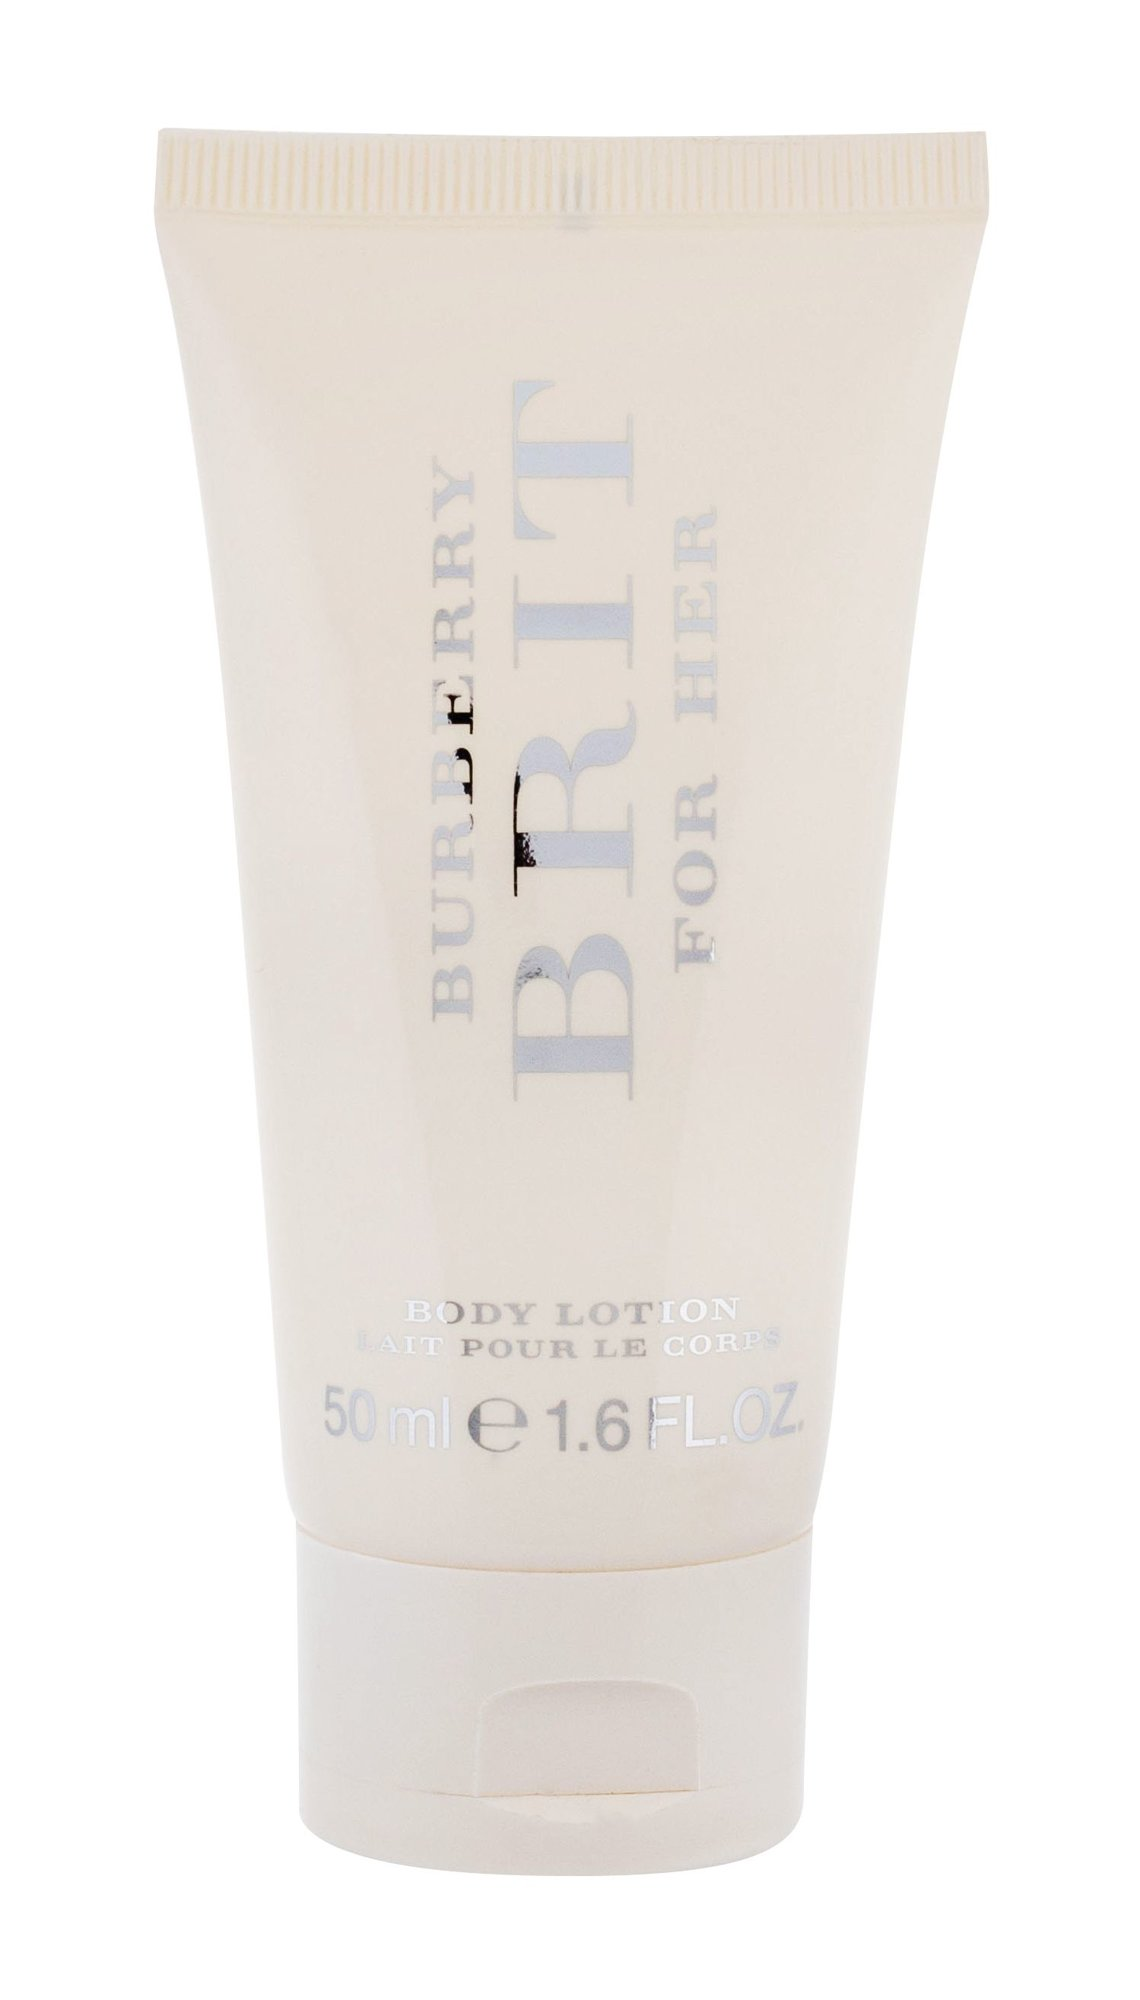 Burberry Brit for Her, Telové mlieko 50ml